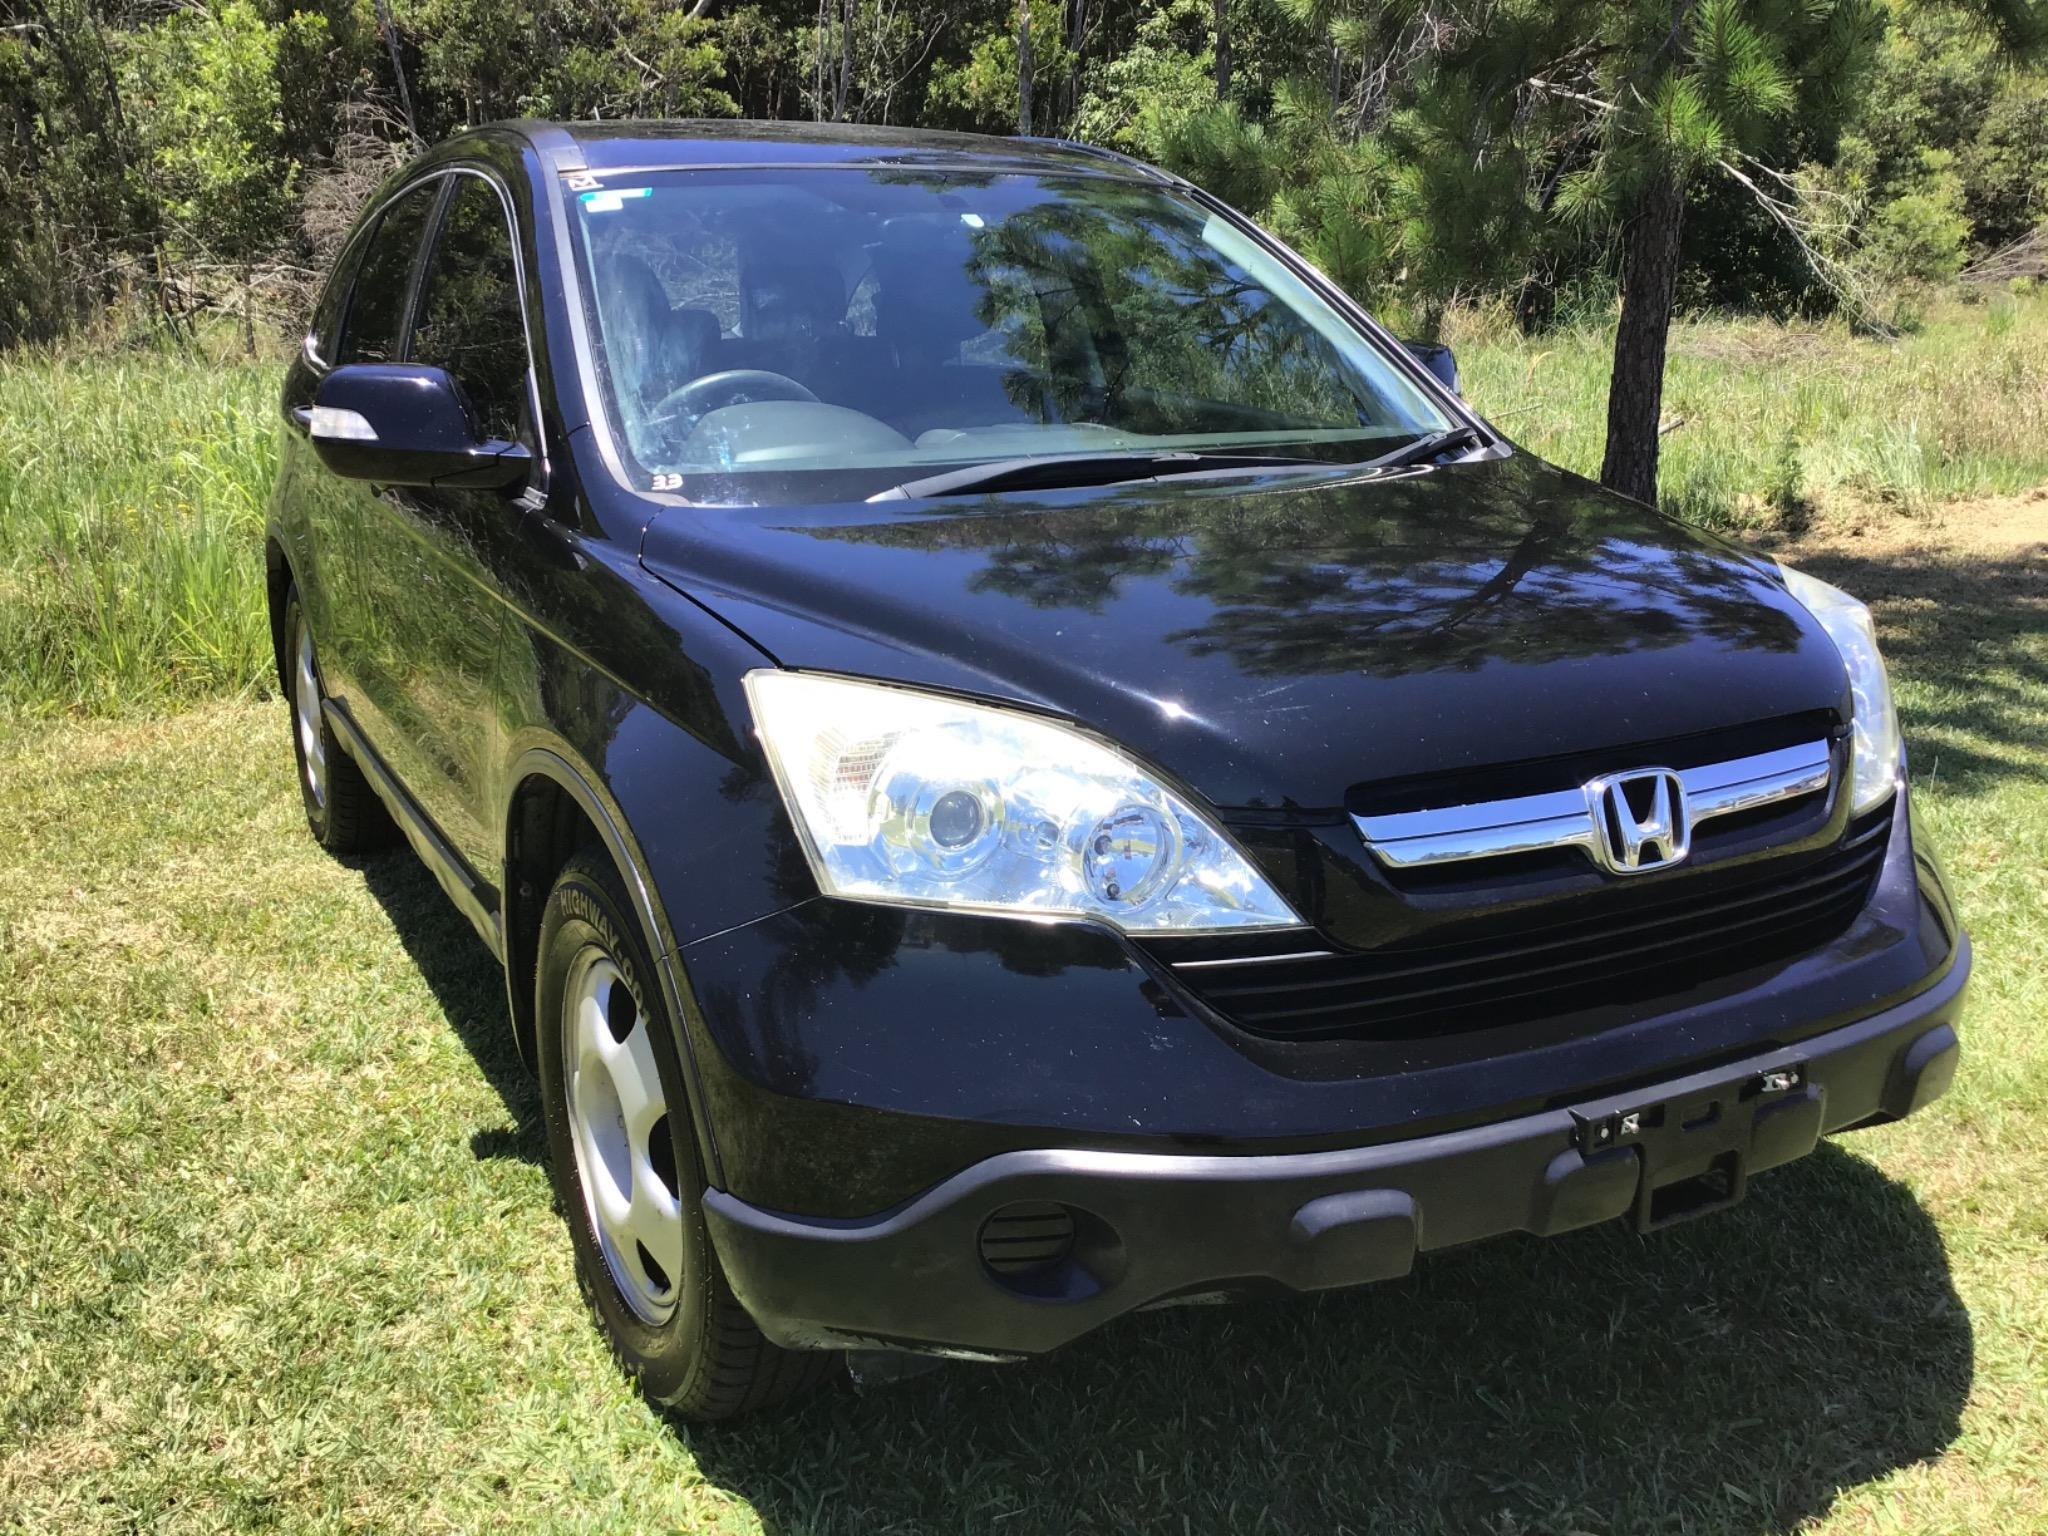 2008 Honda CR-V RE MY2007 Wagon 4dr Man 6sp 4x4 2.4i Picture 8